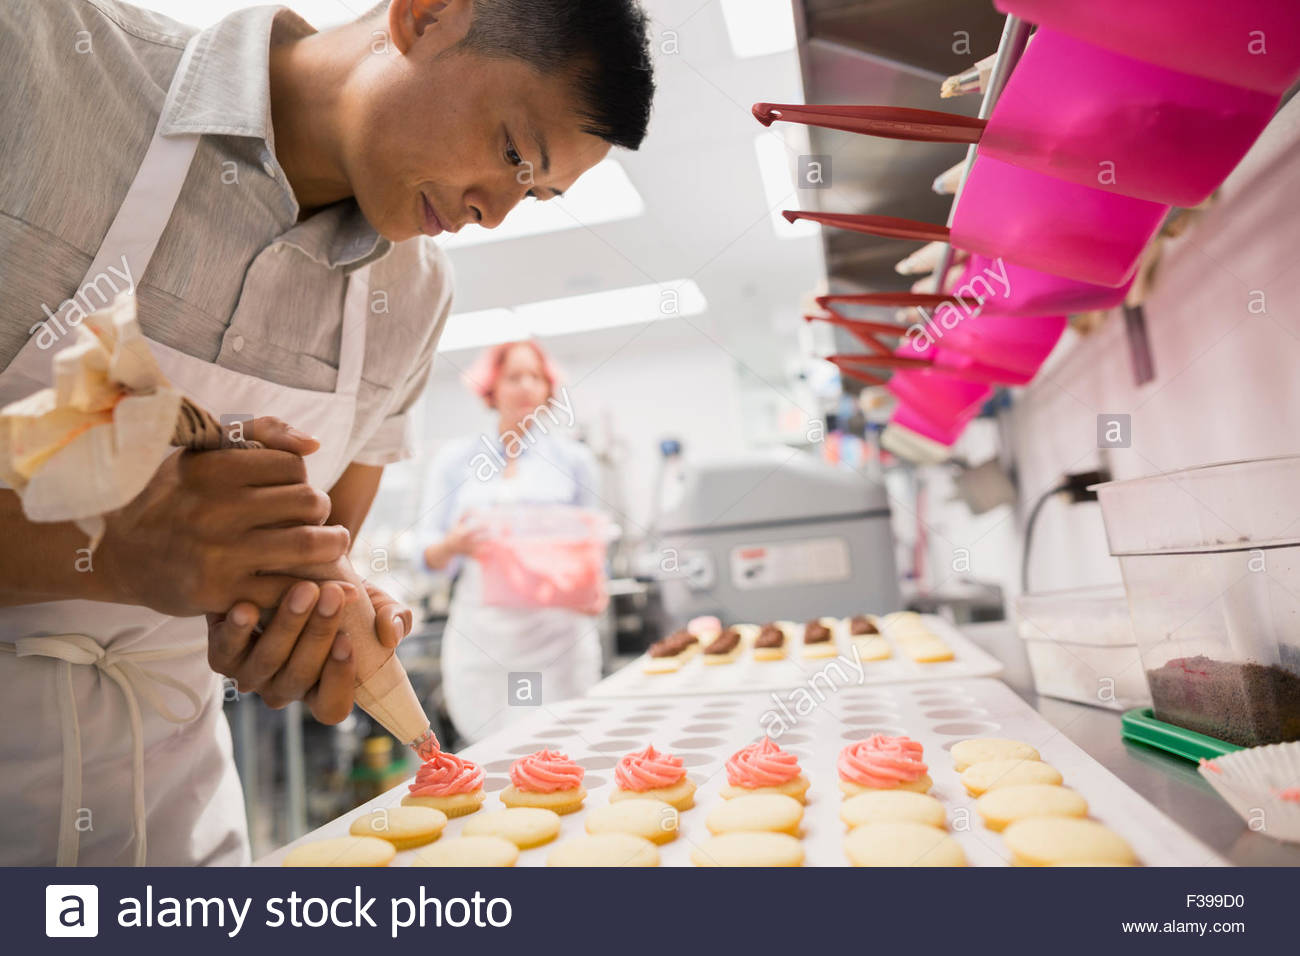 Pastry chef piping cookies pink icing commercial kitchen - Stock Image